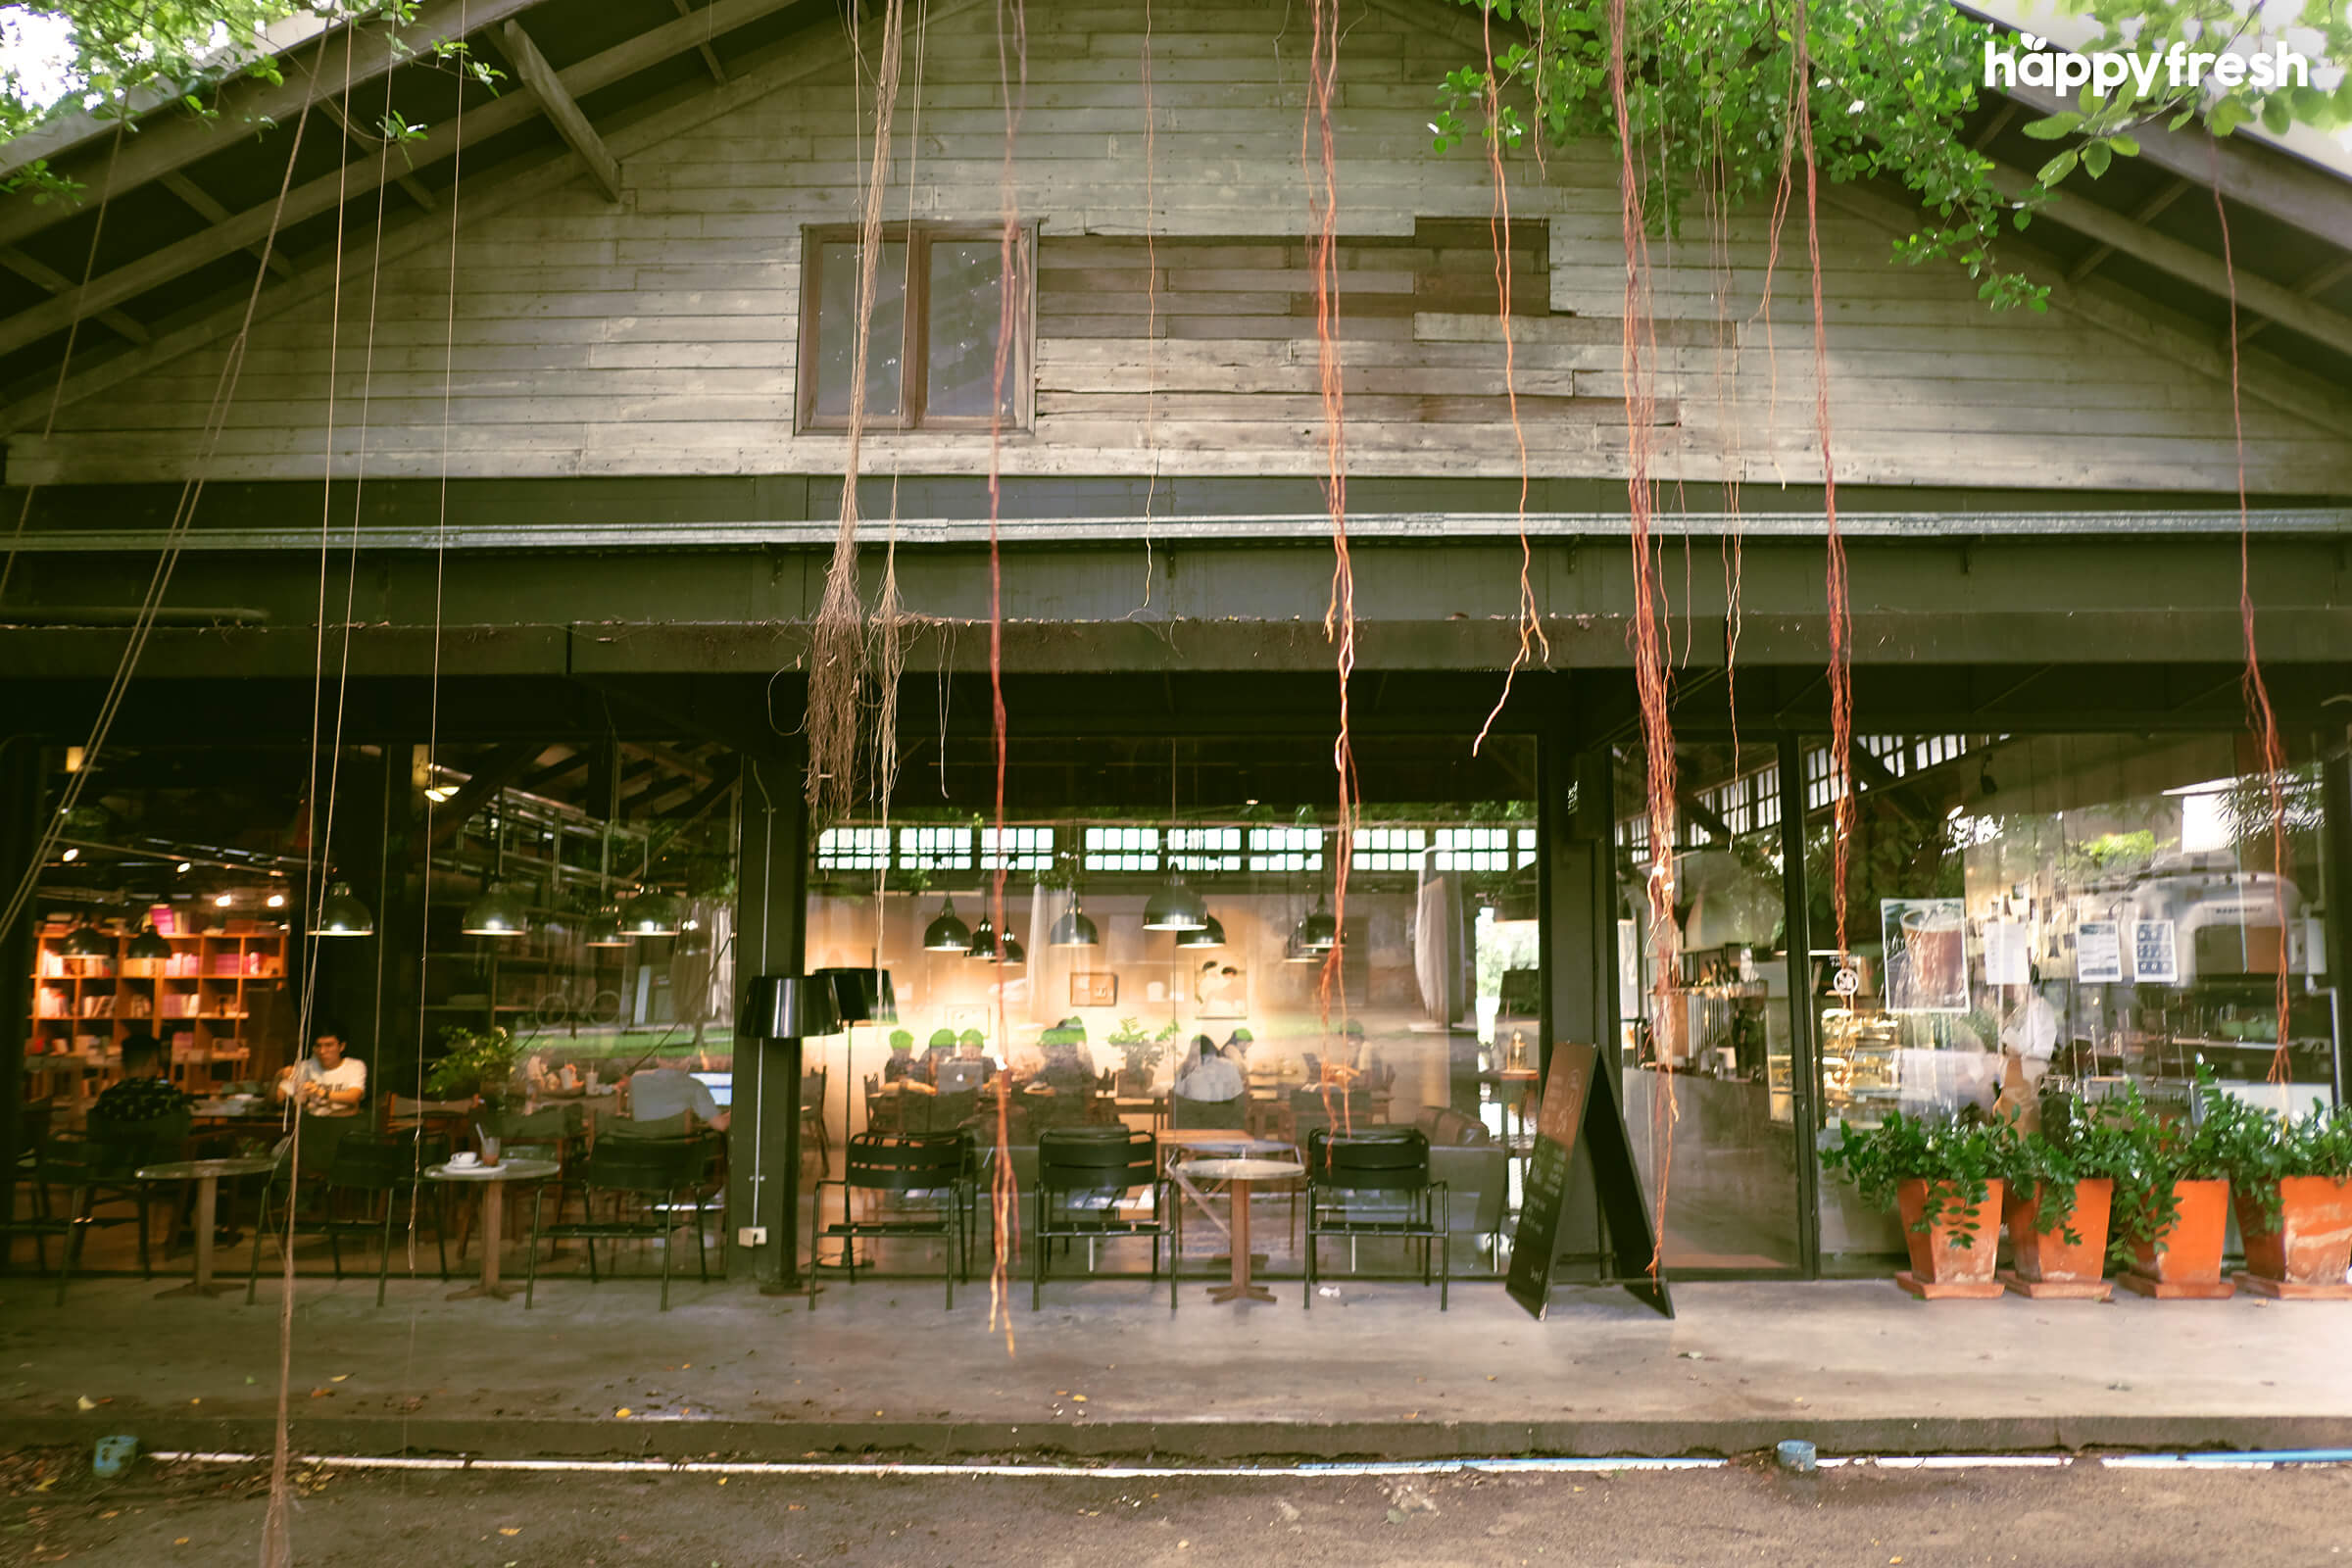 HappyFresh_Review_5_Cafes_Bookstores_In_Bangkok_Candide_Cafe